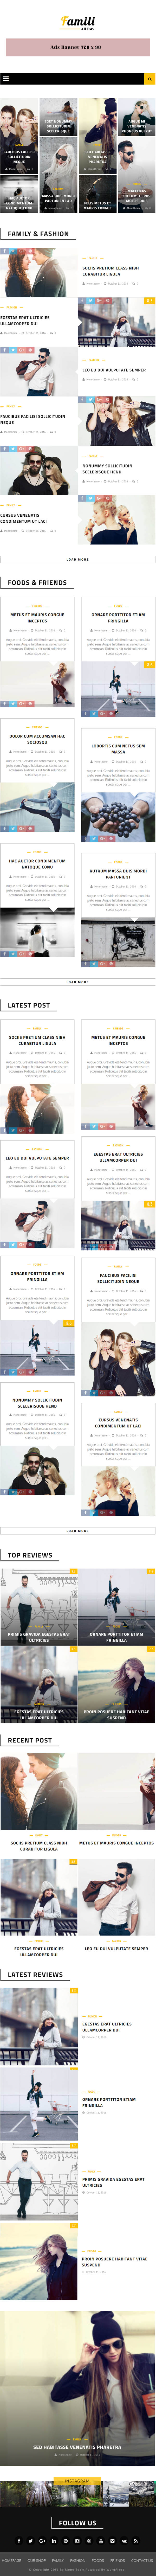 Famili : WordPress Blog and Magazine Theme